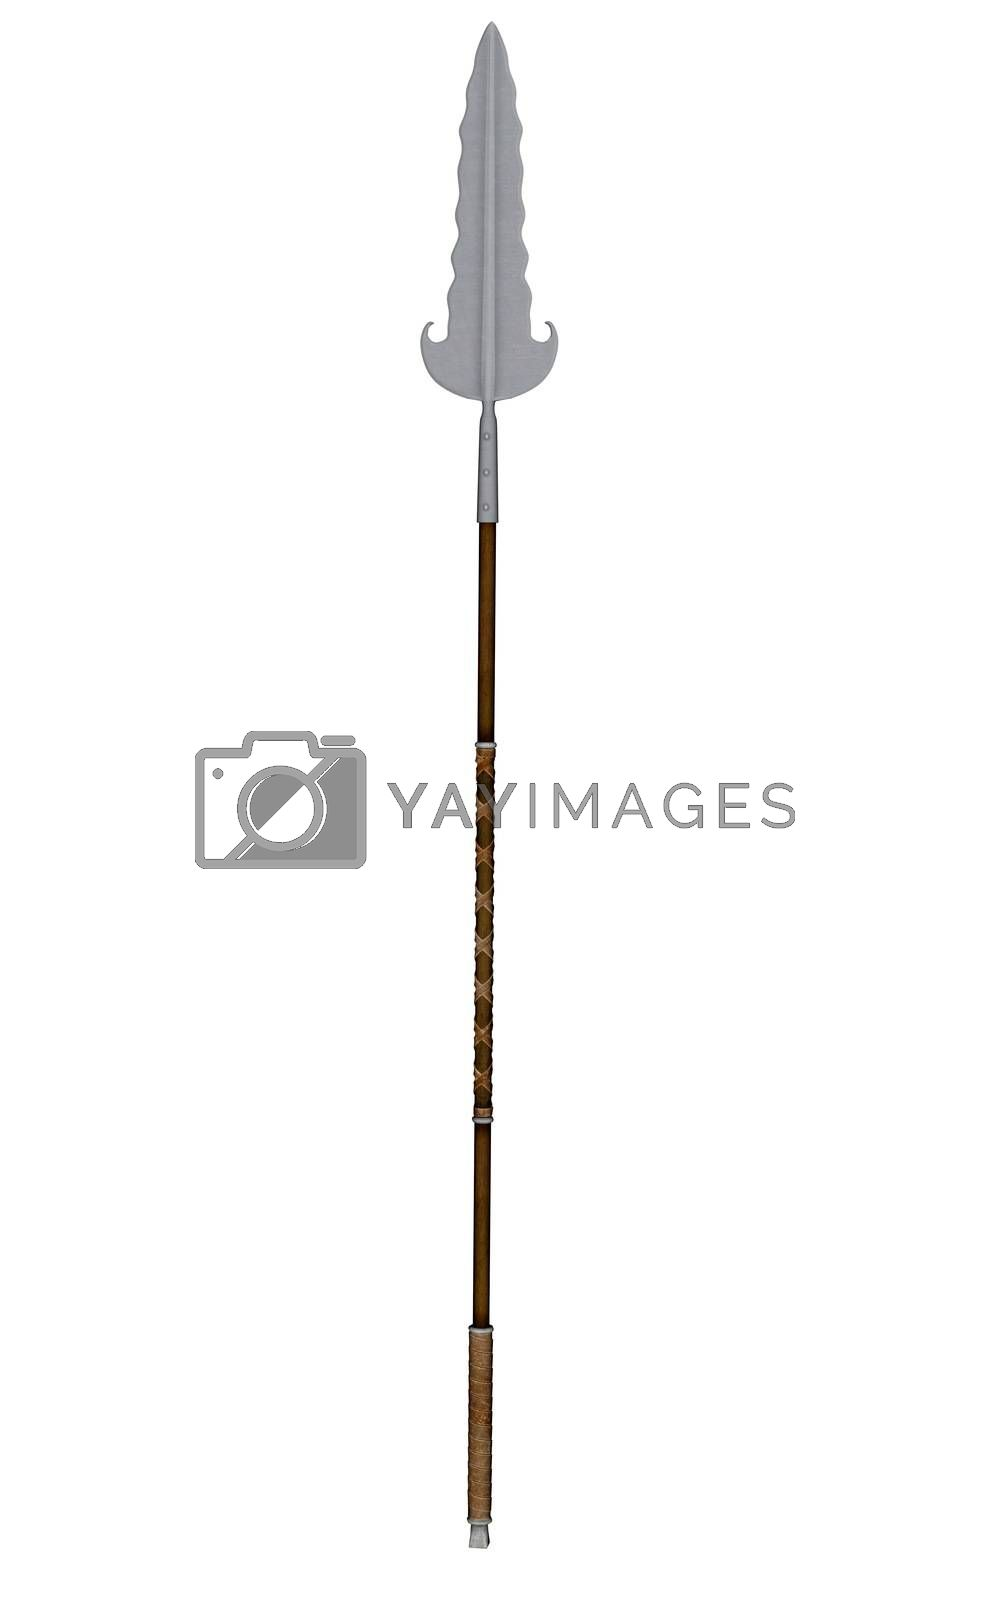 Partizan weapon isolated in white background - 3D render